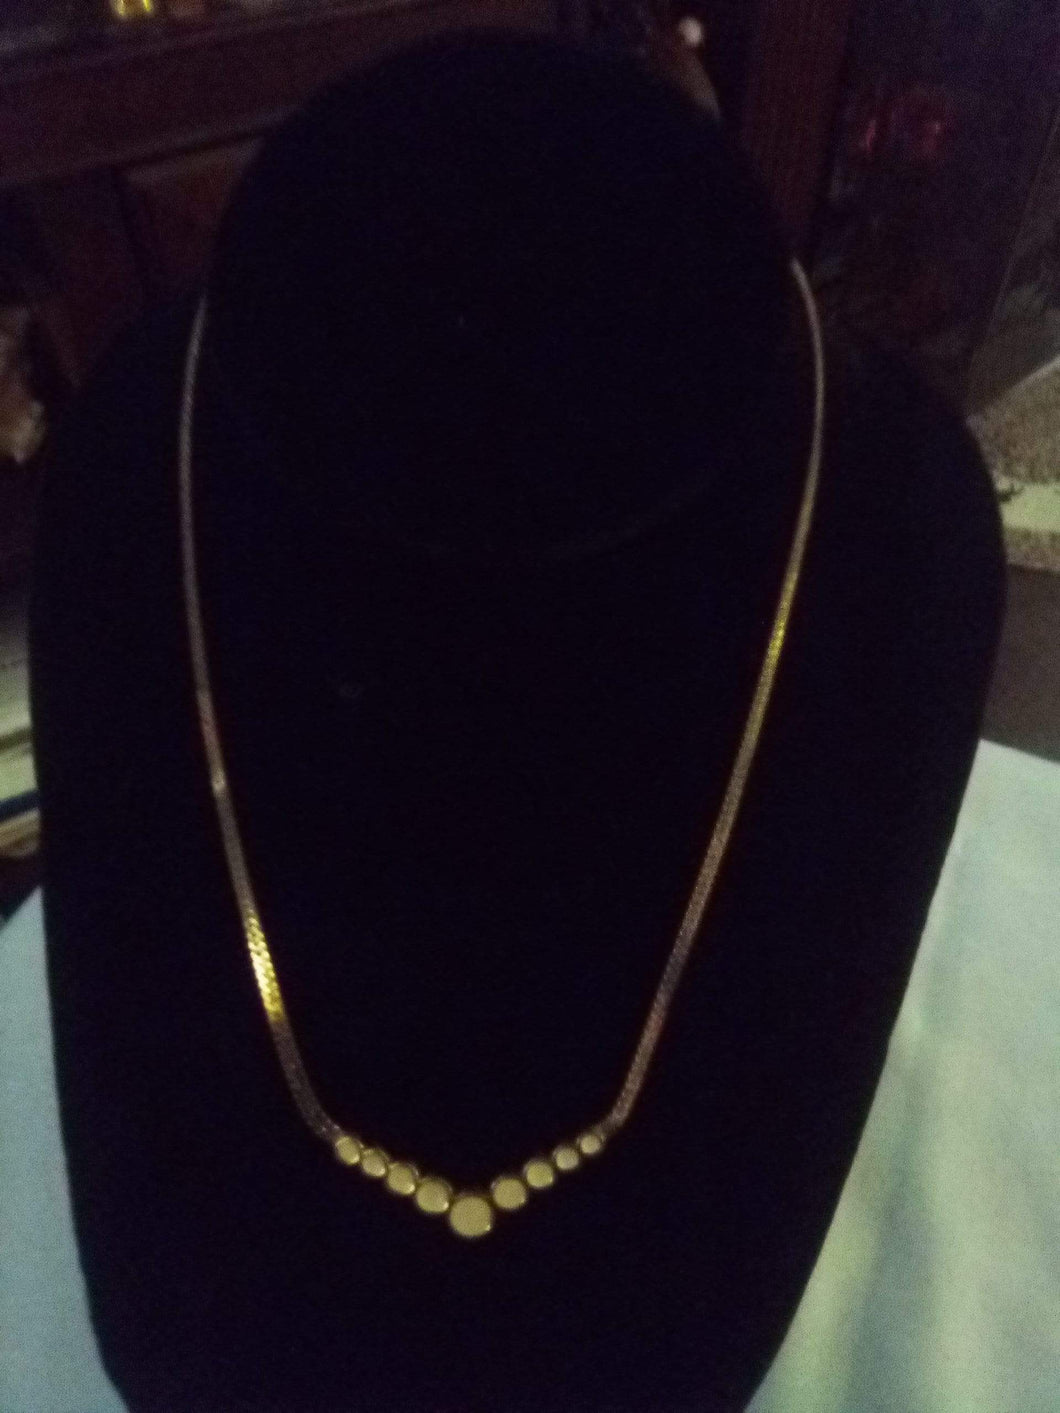 Monet marked gold tone chained necklace - B&P'sringsnthings